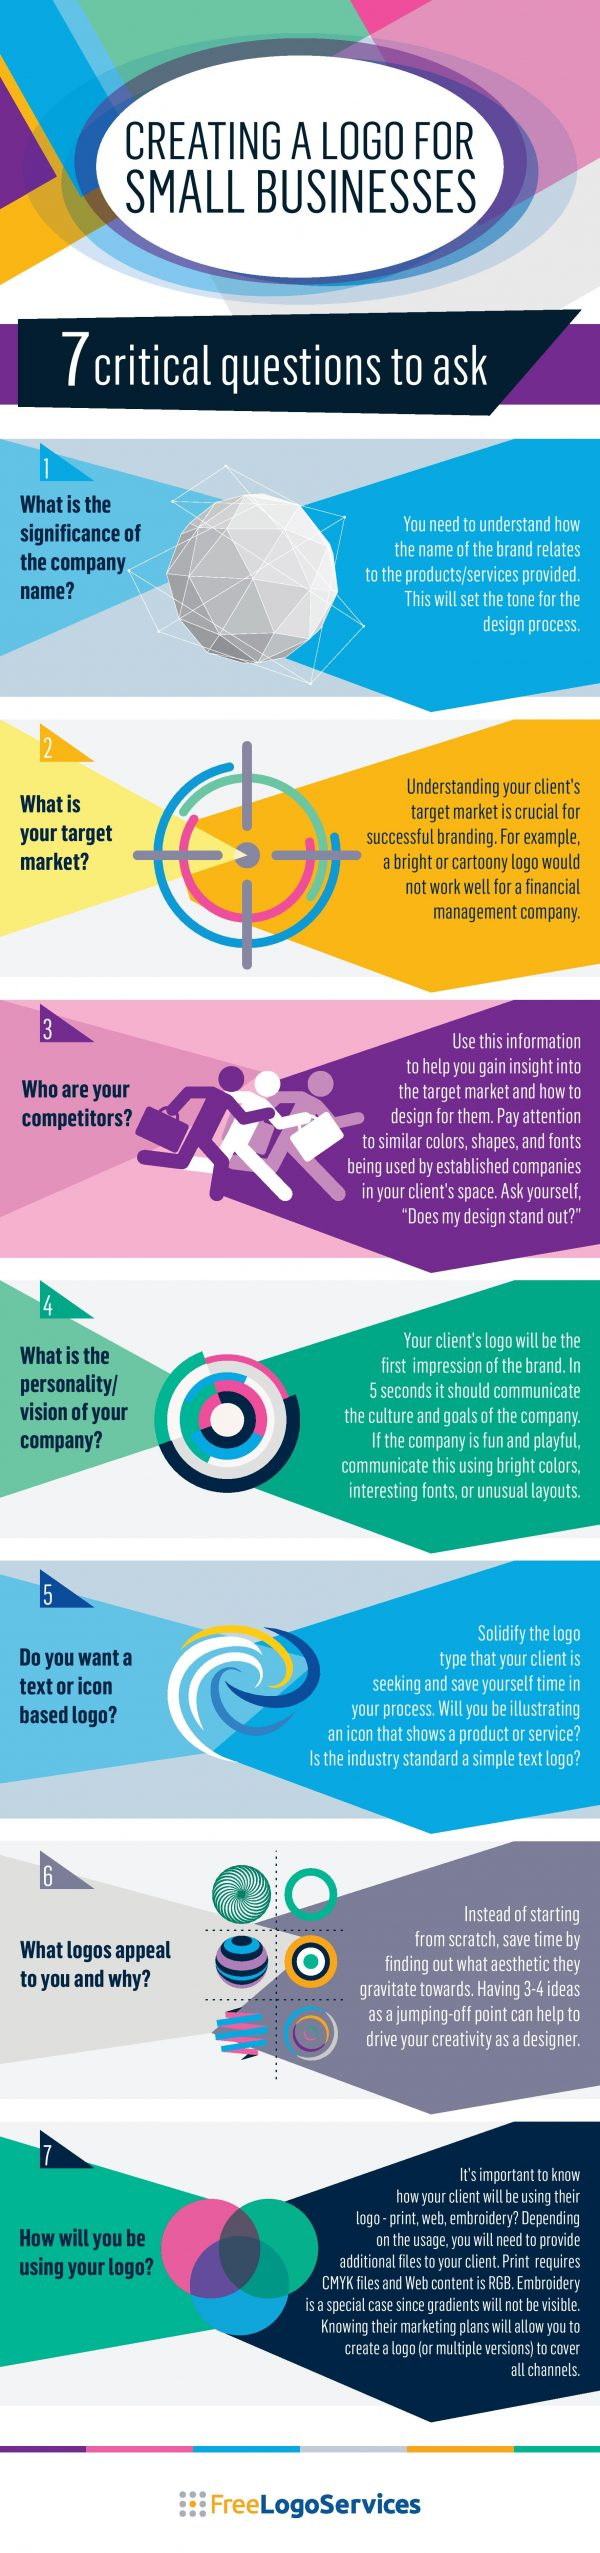 Infographic explaining the 7 questions a person should ask themselves when designing a logo design